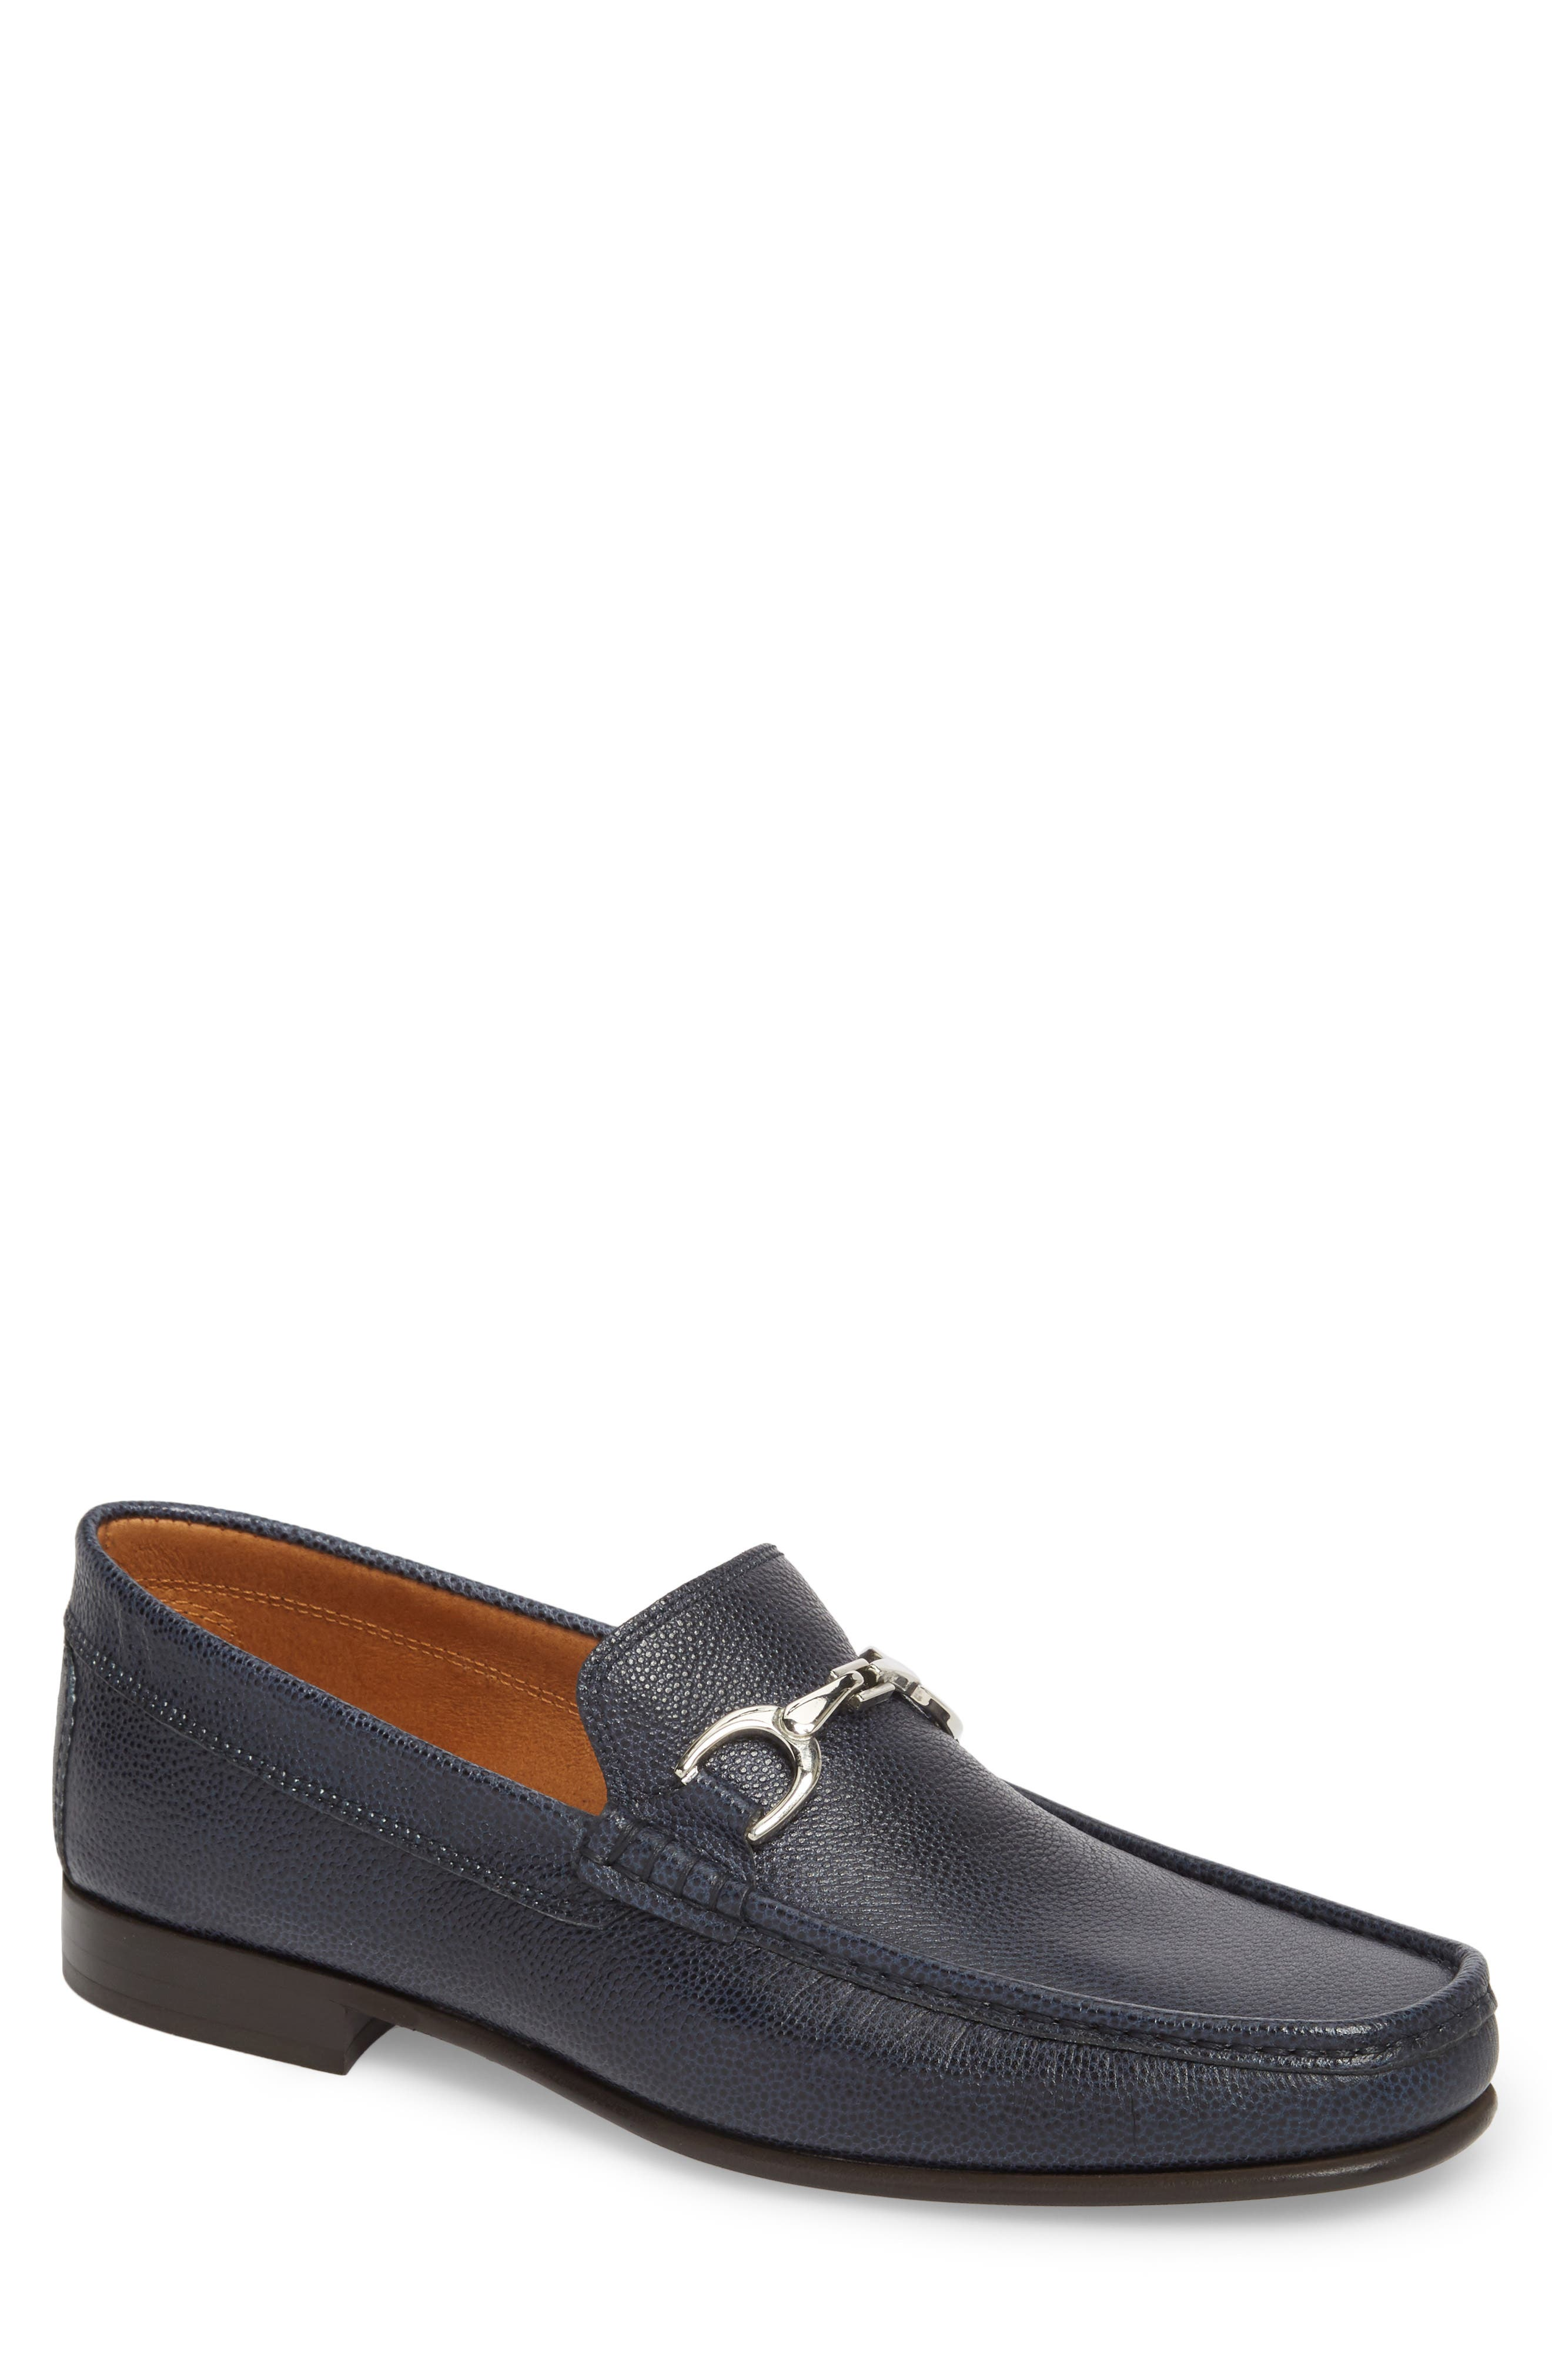 Darrin Bit Loafer,                             Main thumbnail 1, color,                             NAVY